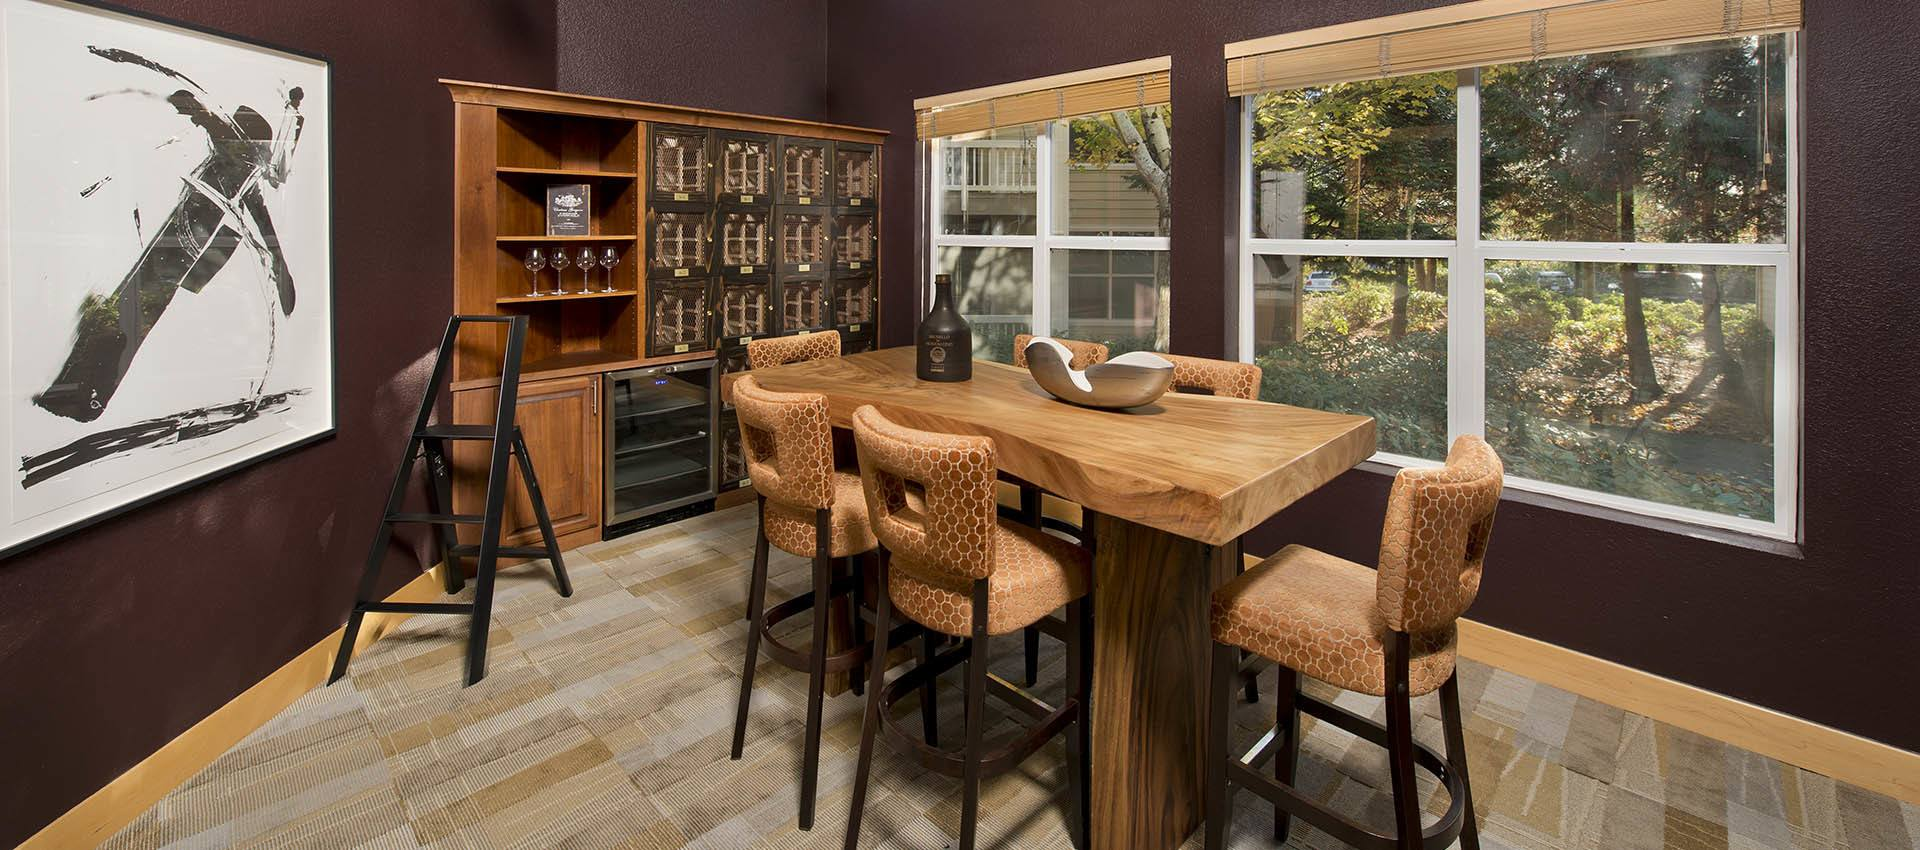 Tasting Room at Center Pointe Apartment Homes in Beaverton